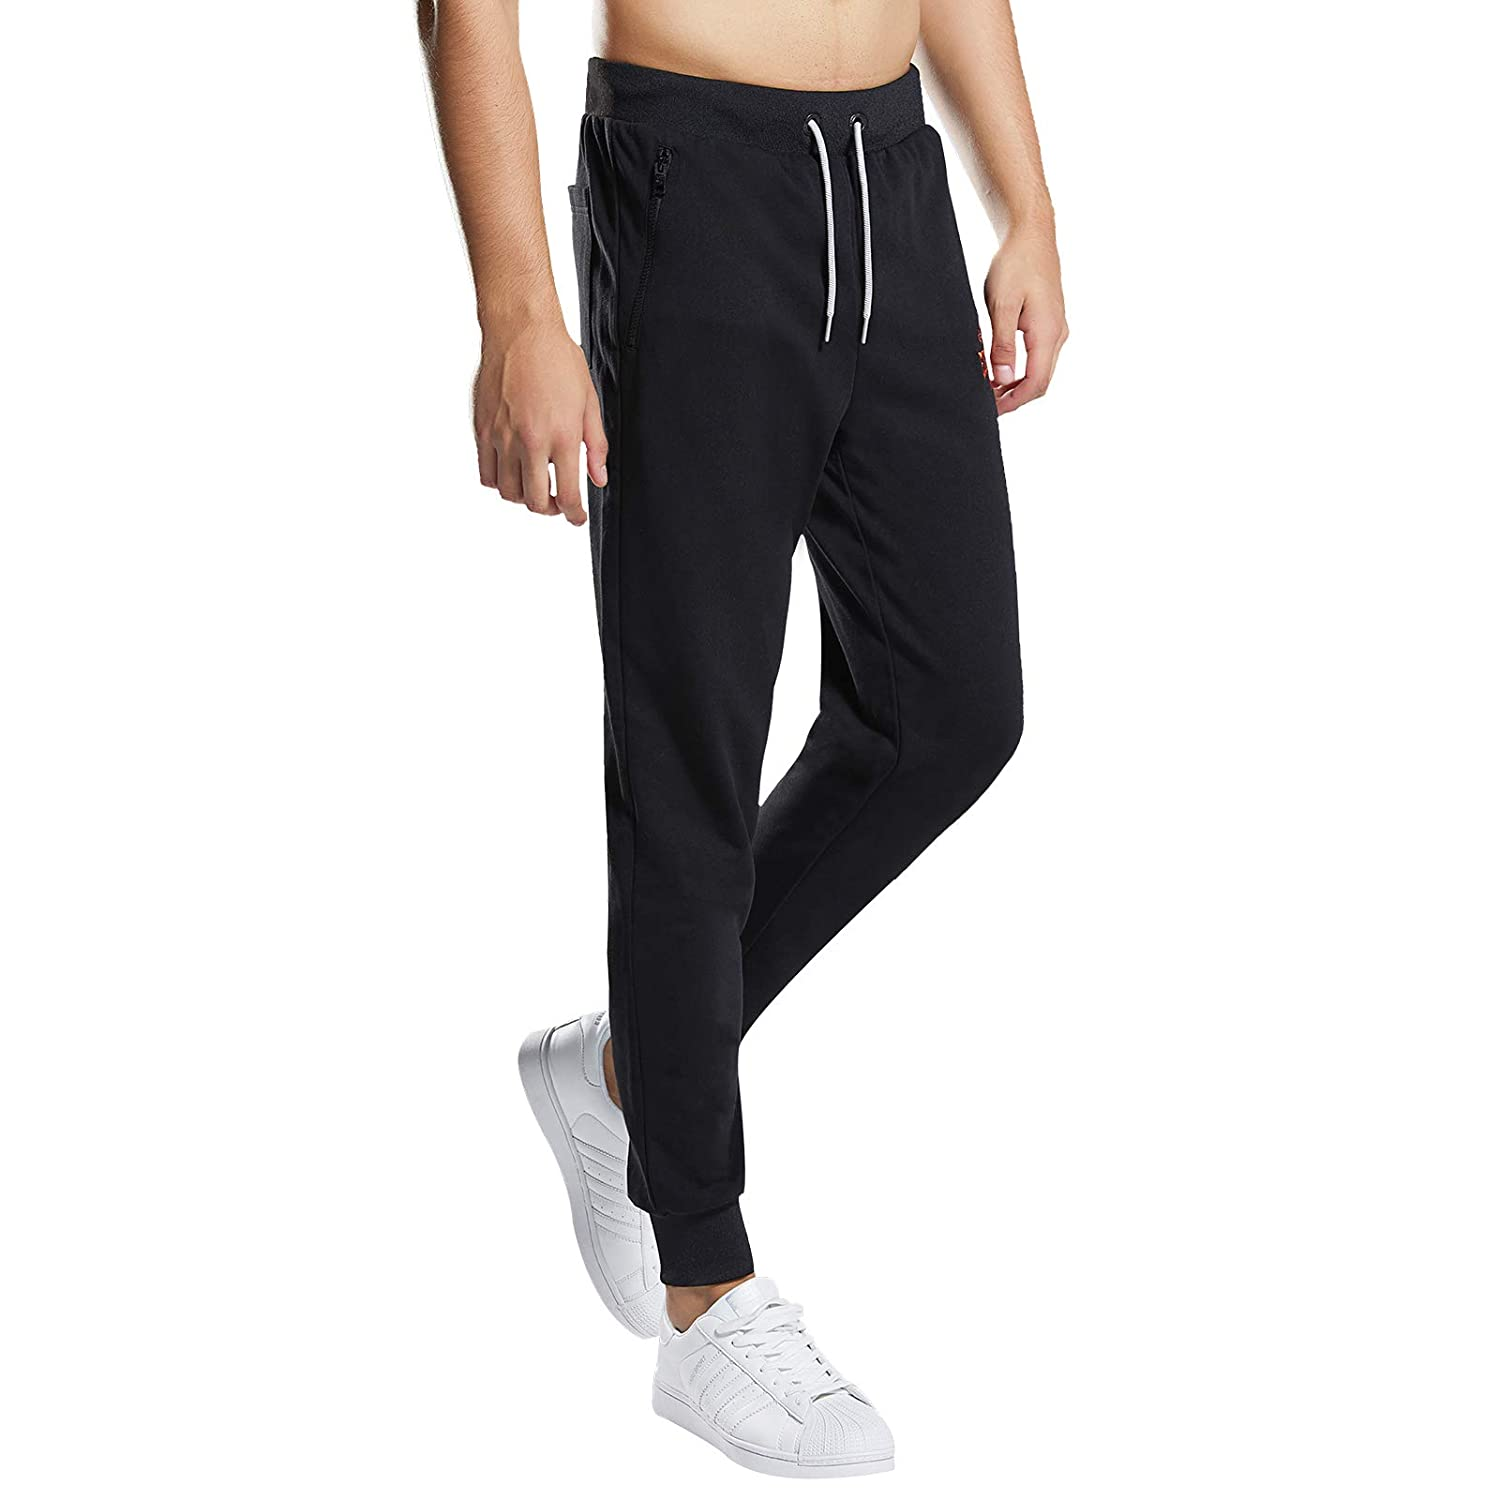 Extreme Pop Mens UK Athletic Sweatpant Jogger Slim Fit Mid-Weight Fleece Elastic Closed Bottom with Zip Pockets